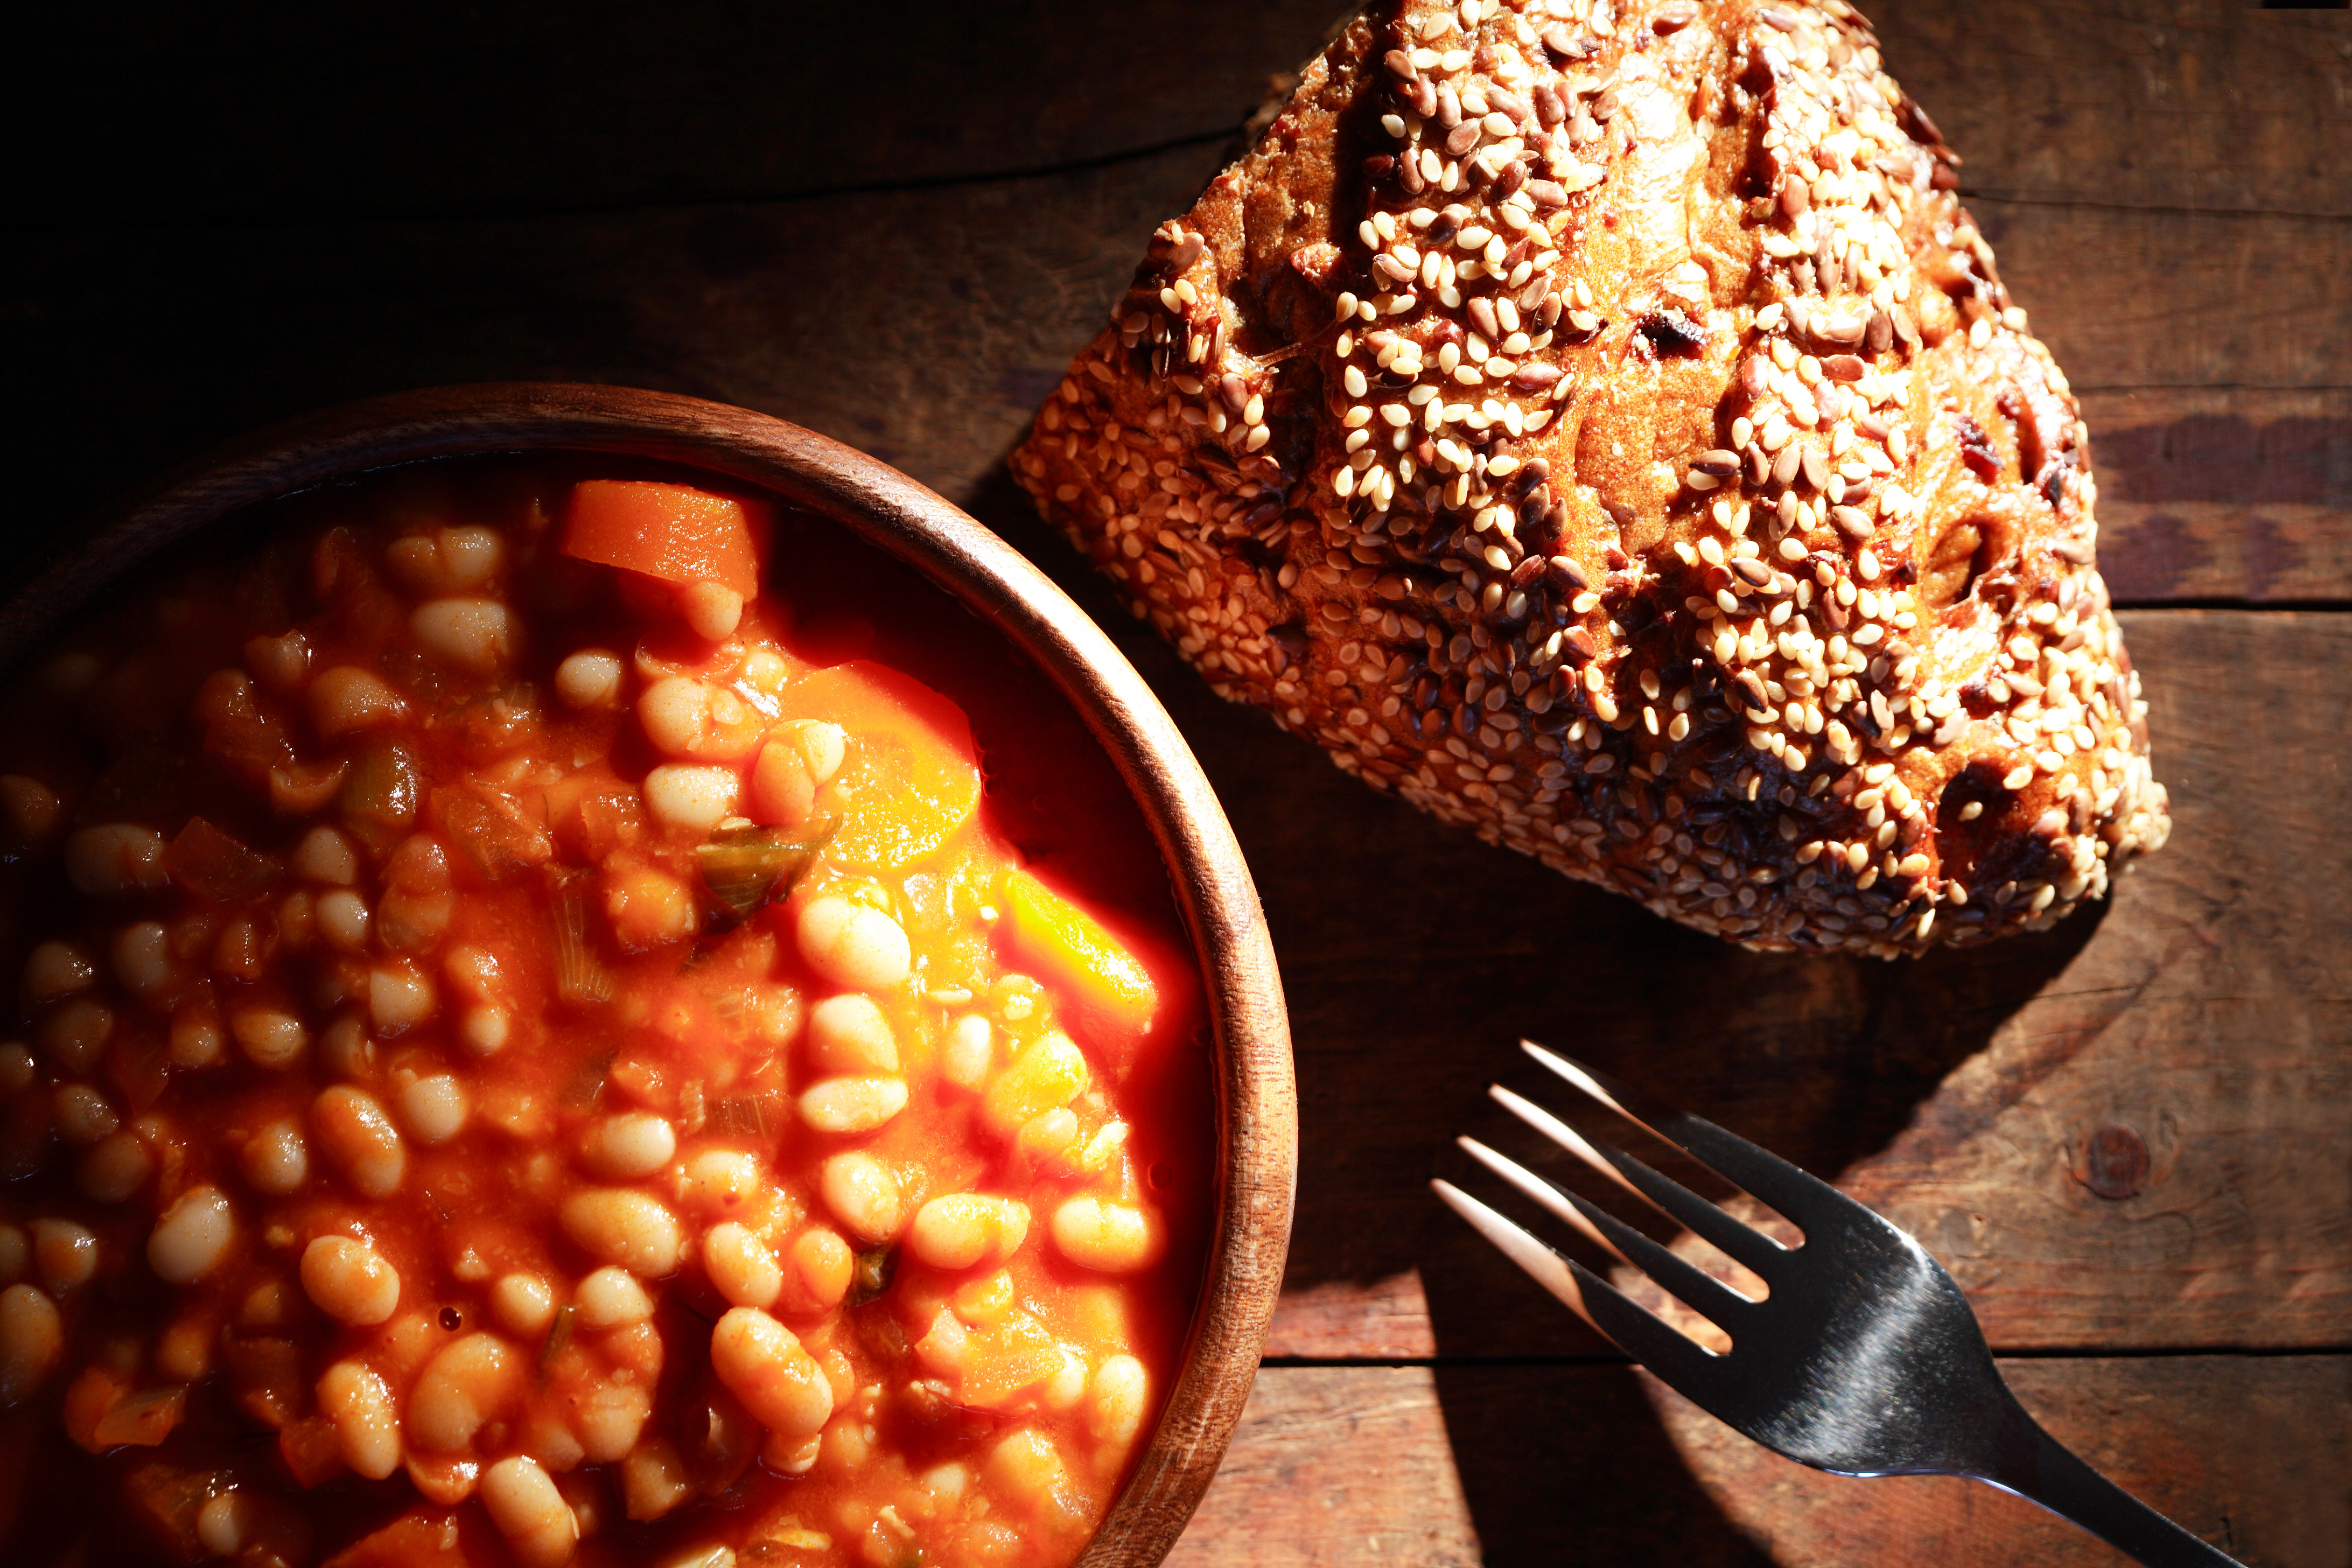 Wooden bowl full of stewed beans near fork and bread